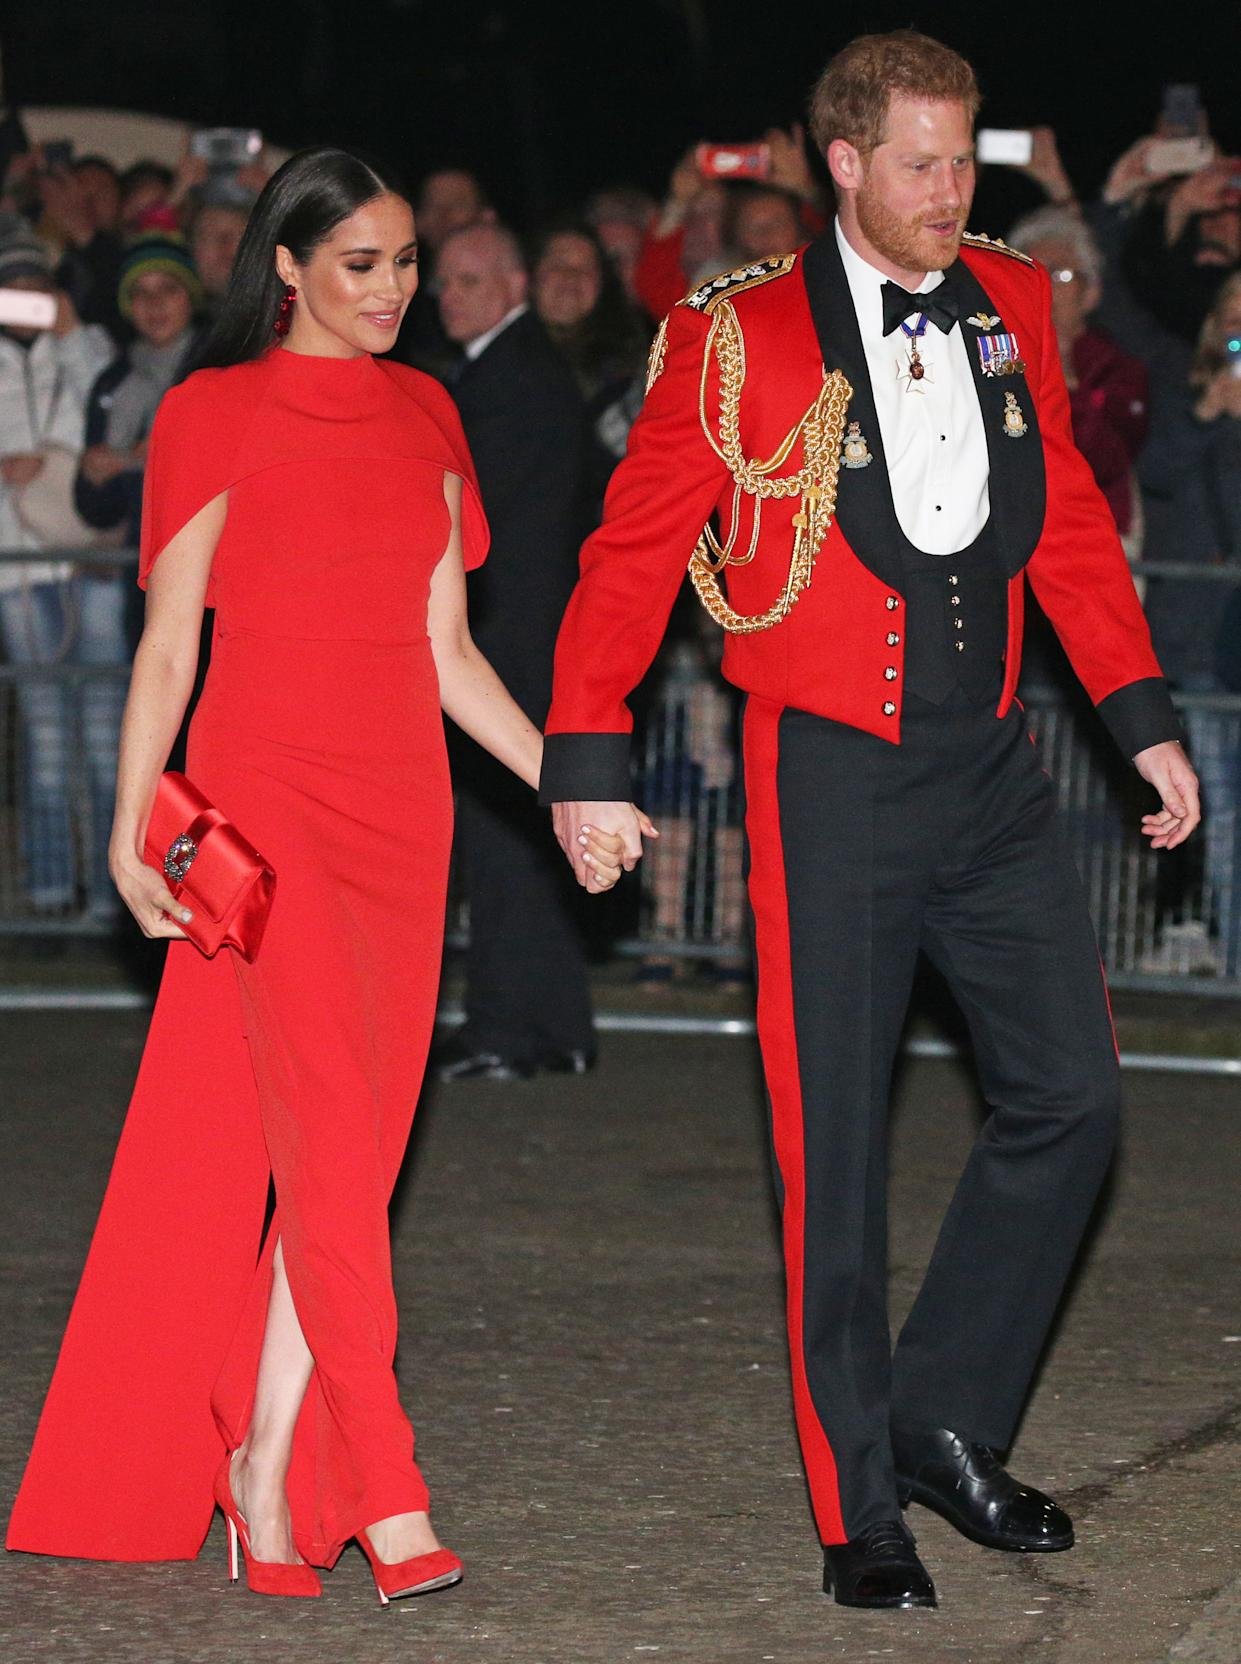 The Duke and Duchess of Sussex arrive at the Royal Albert Hall in London to attend the Mountbatten Festival of Music.